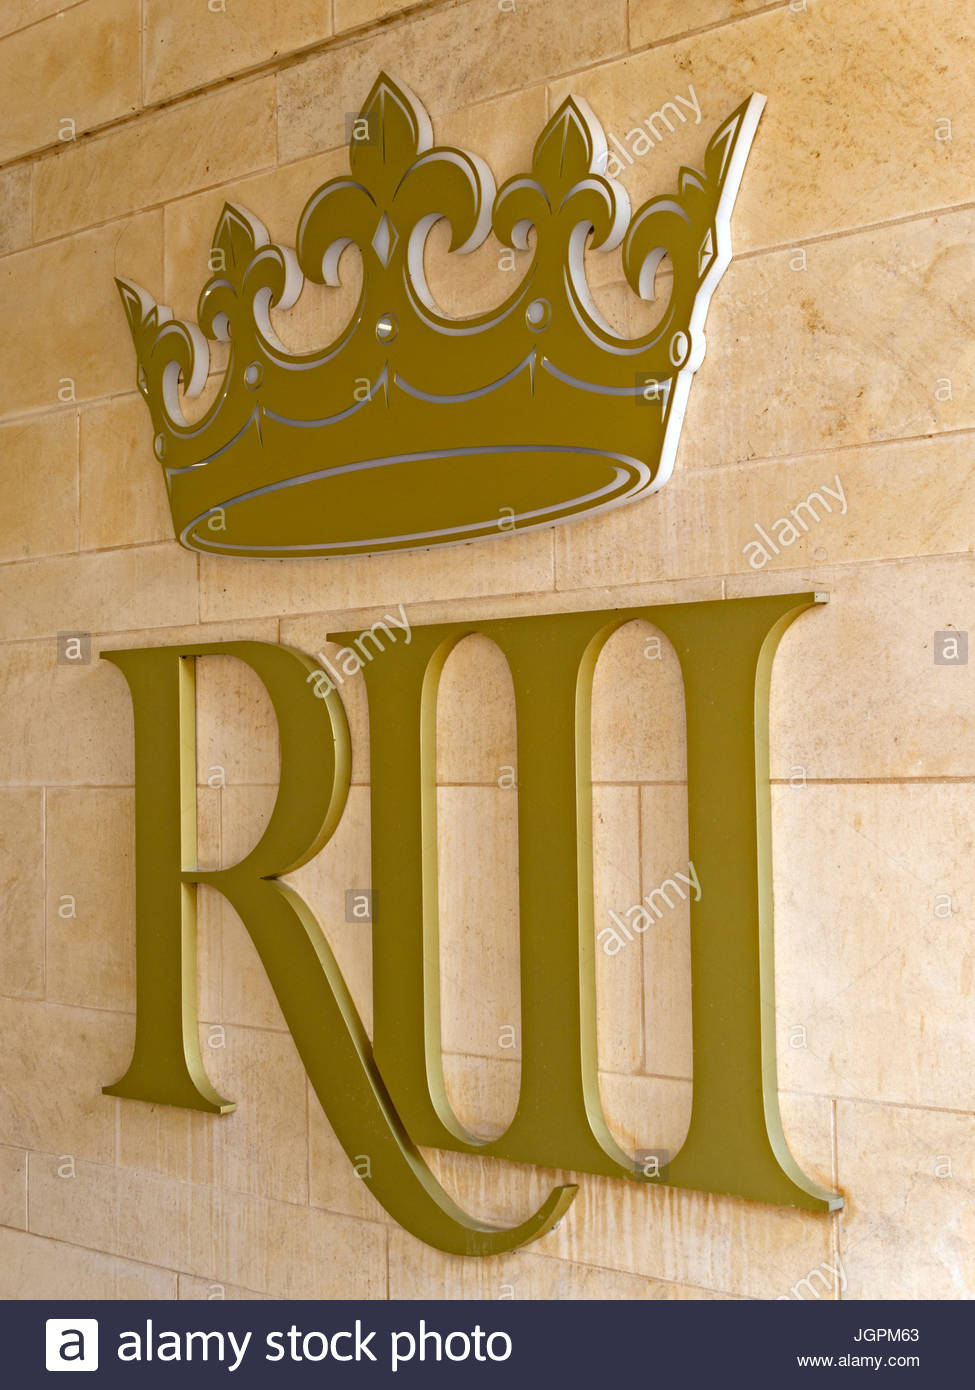 King Richard III Visitor Centre logo at Exhibition entrance, Leicester, England, UK - Stock Image